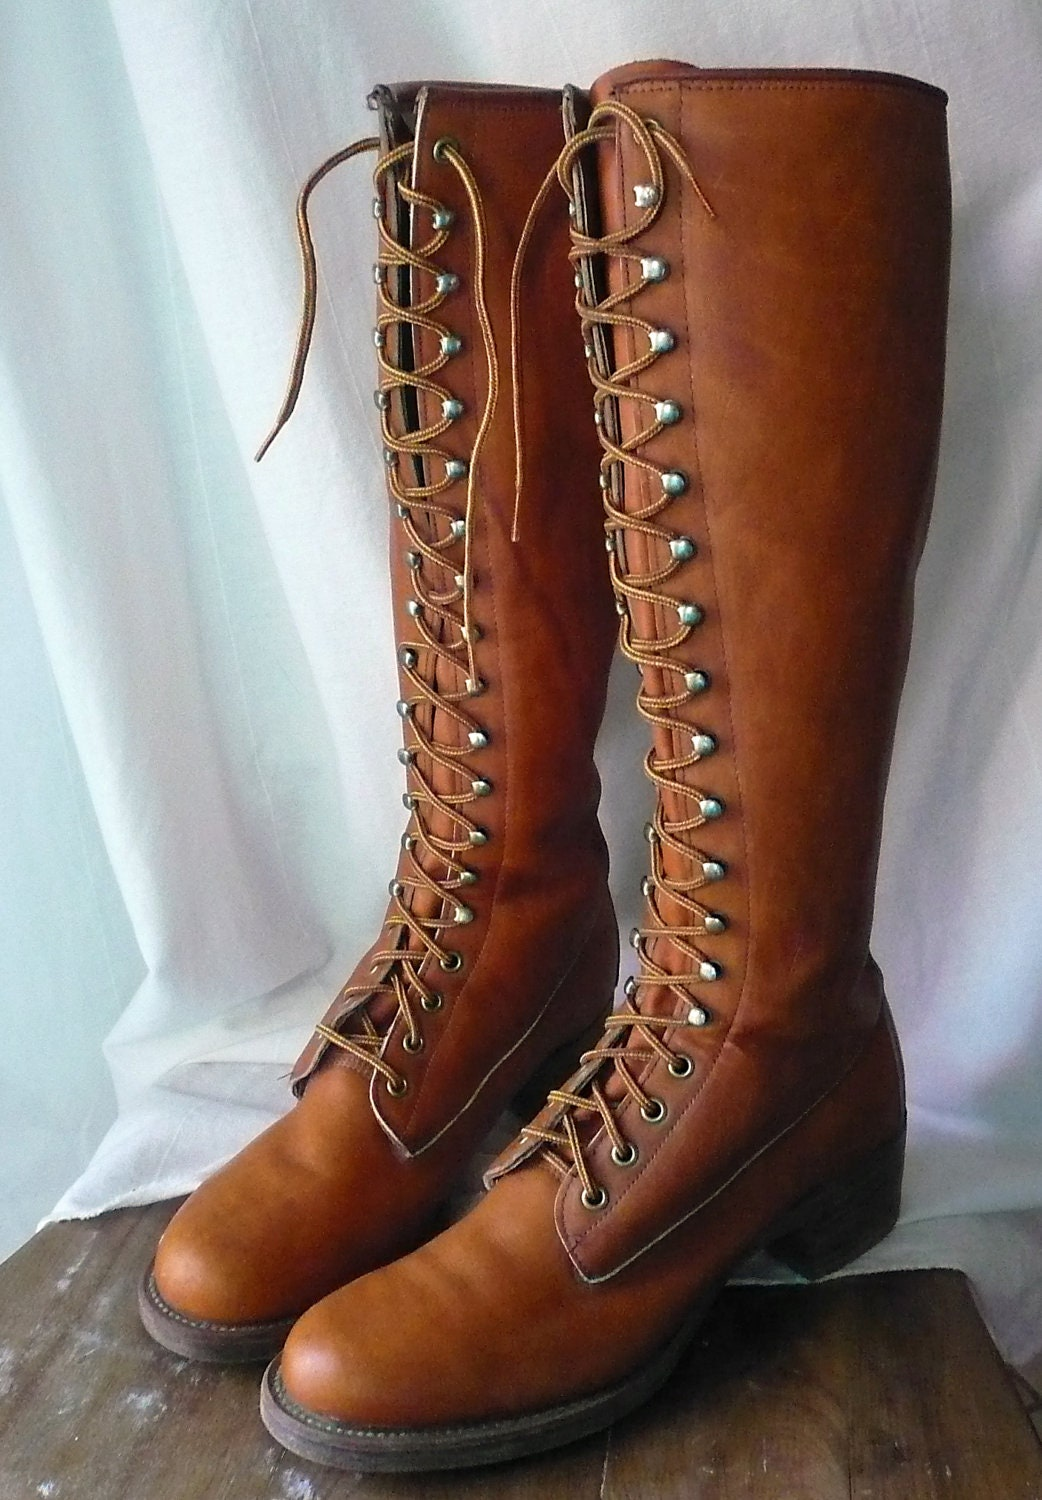 On Sale Vintage Frye Tall Lace Up Boots Black Label Size 10